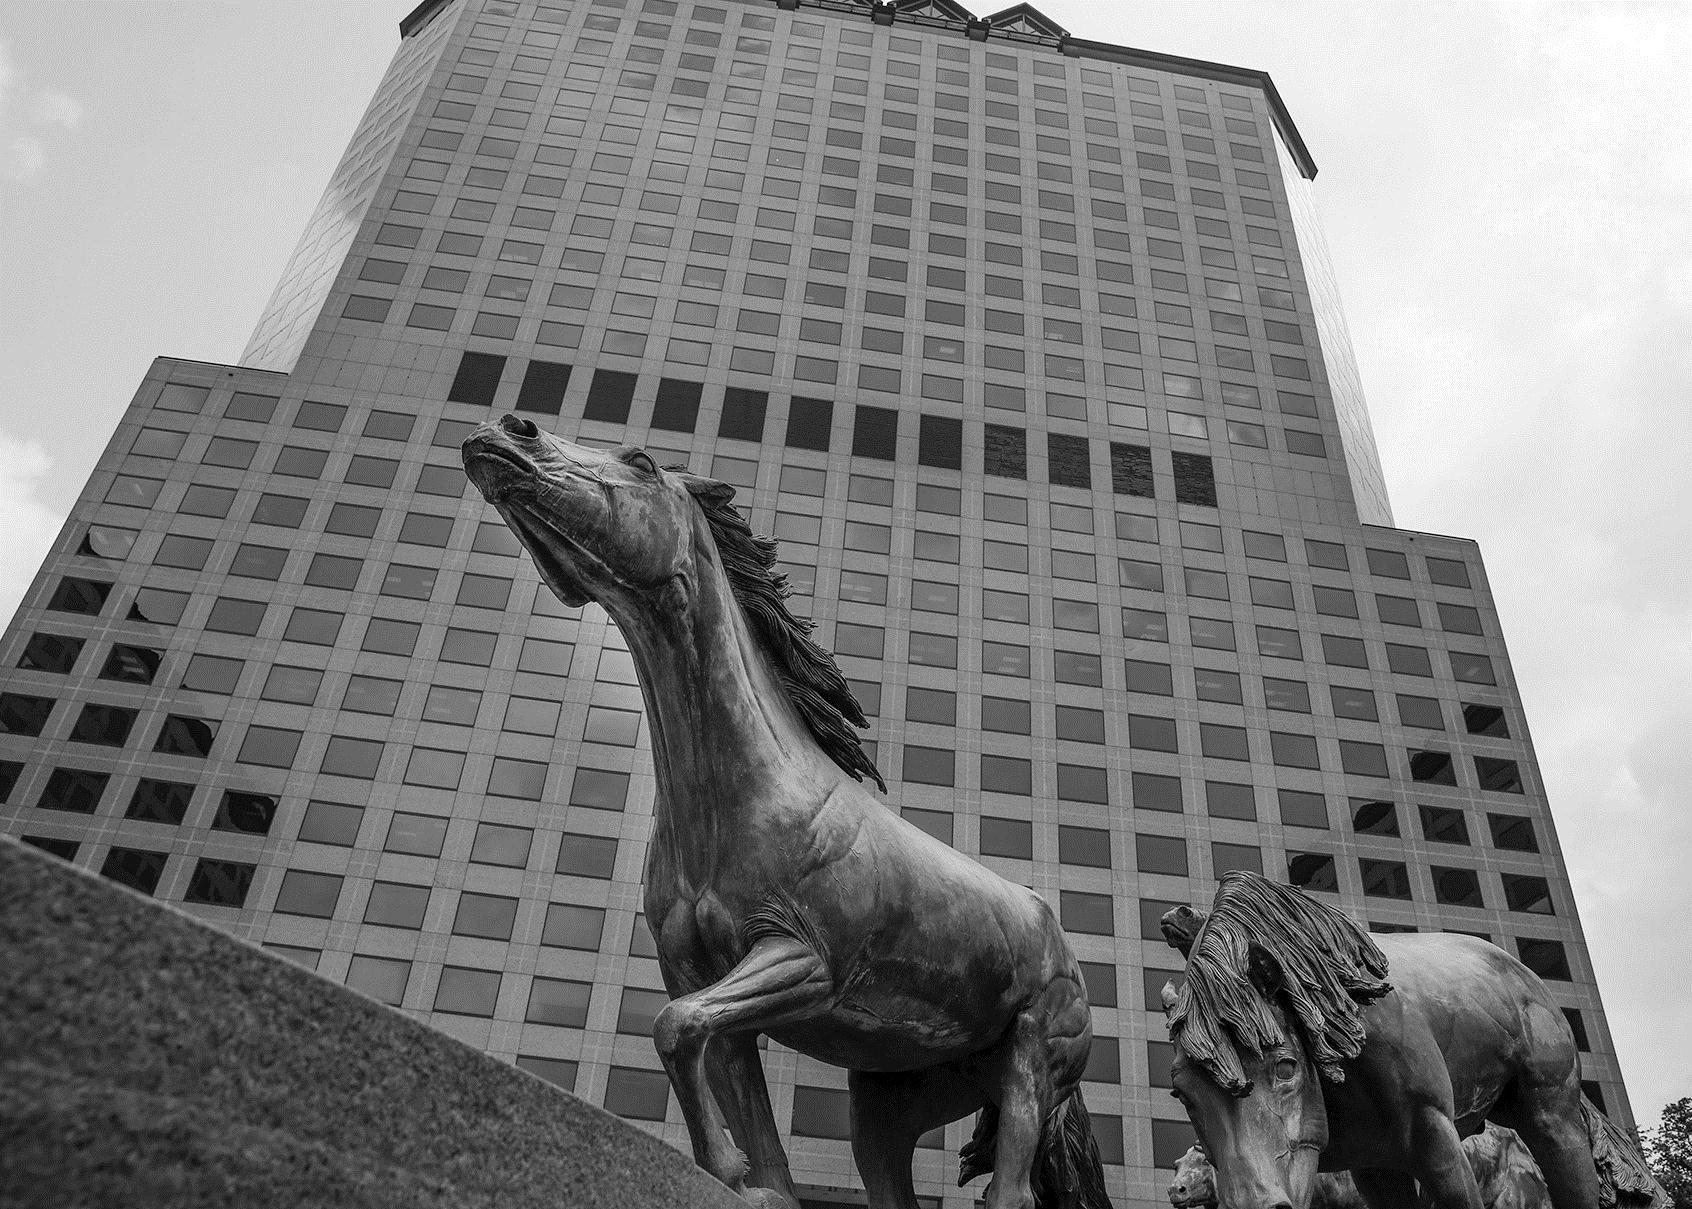 Iconic mustangs sculpture site near Dallas set for renovation